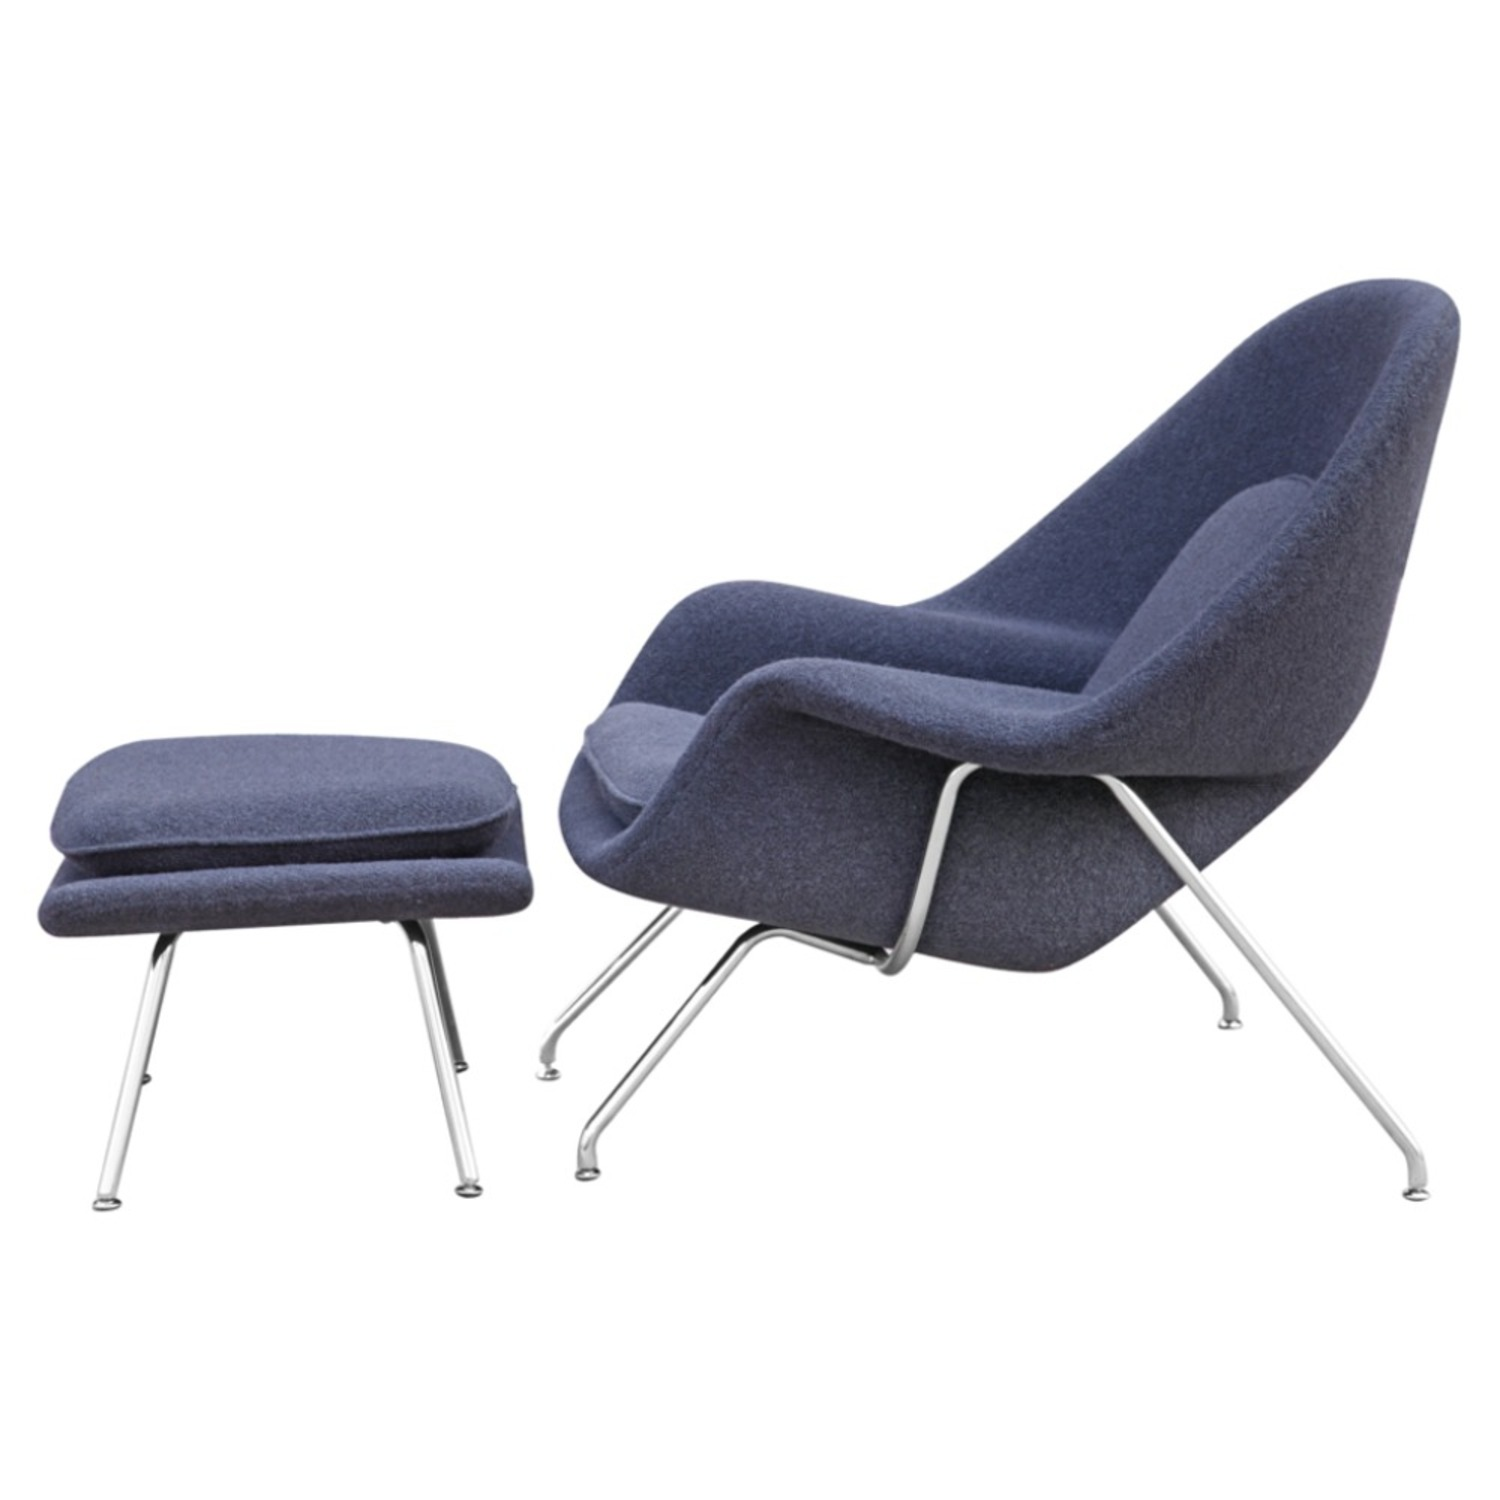 Chair & Ottoman Covered In Gray Wool Fabric - image-3